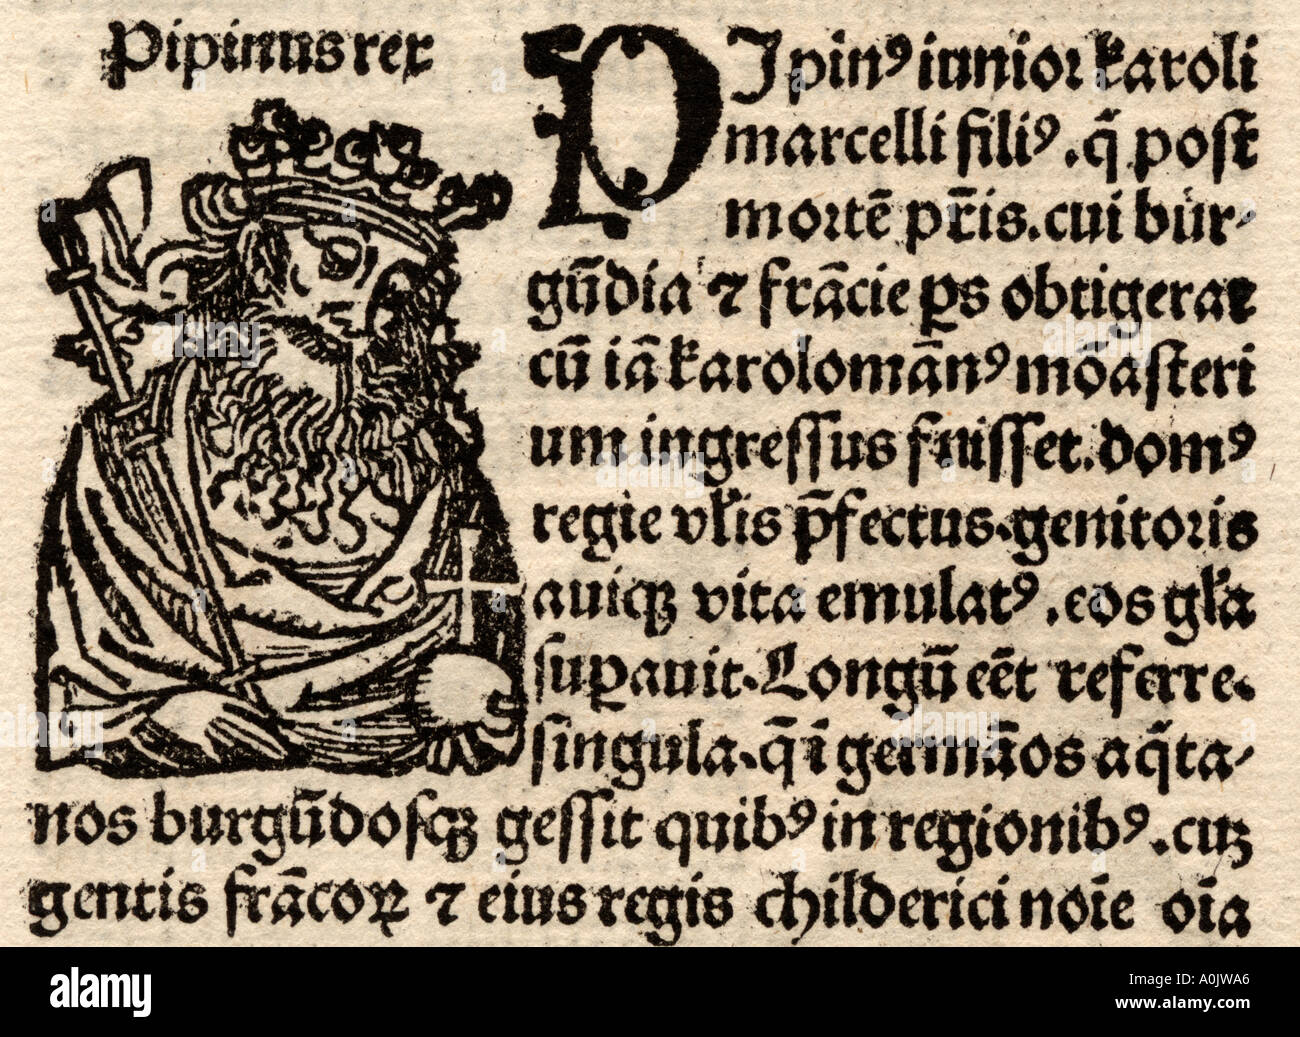 Detail from original incunable leaf in Latin from Hartmut Schedel Liber Chronicorum Printed by Schoensperger in 1497 - Stock Image